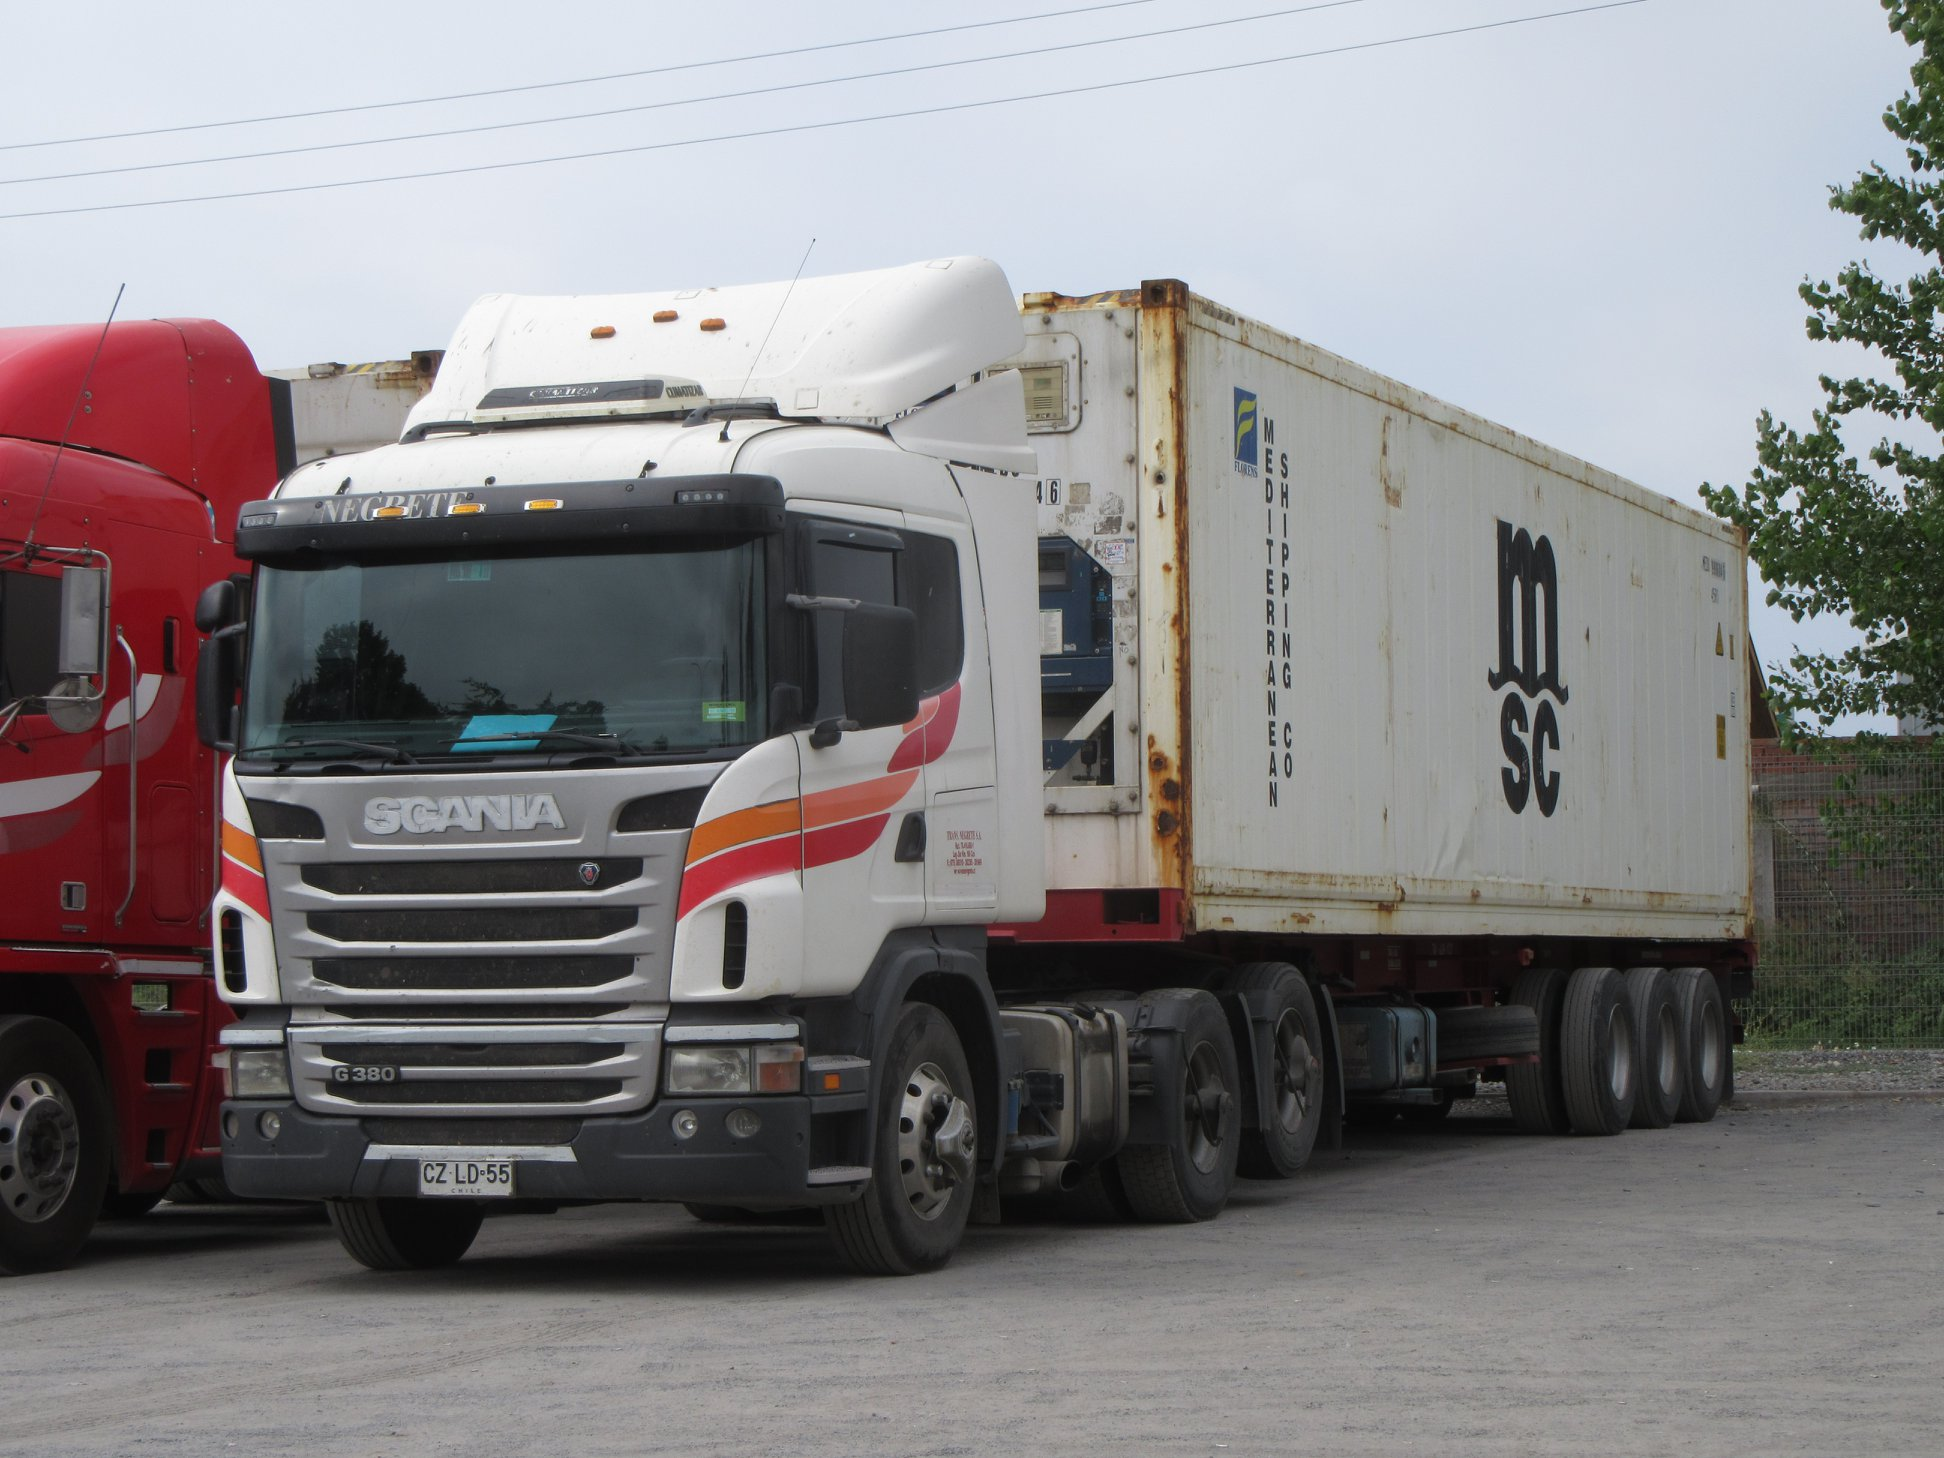 SCANIA-G-380-A-6X2-TRACTOR--2011